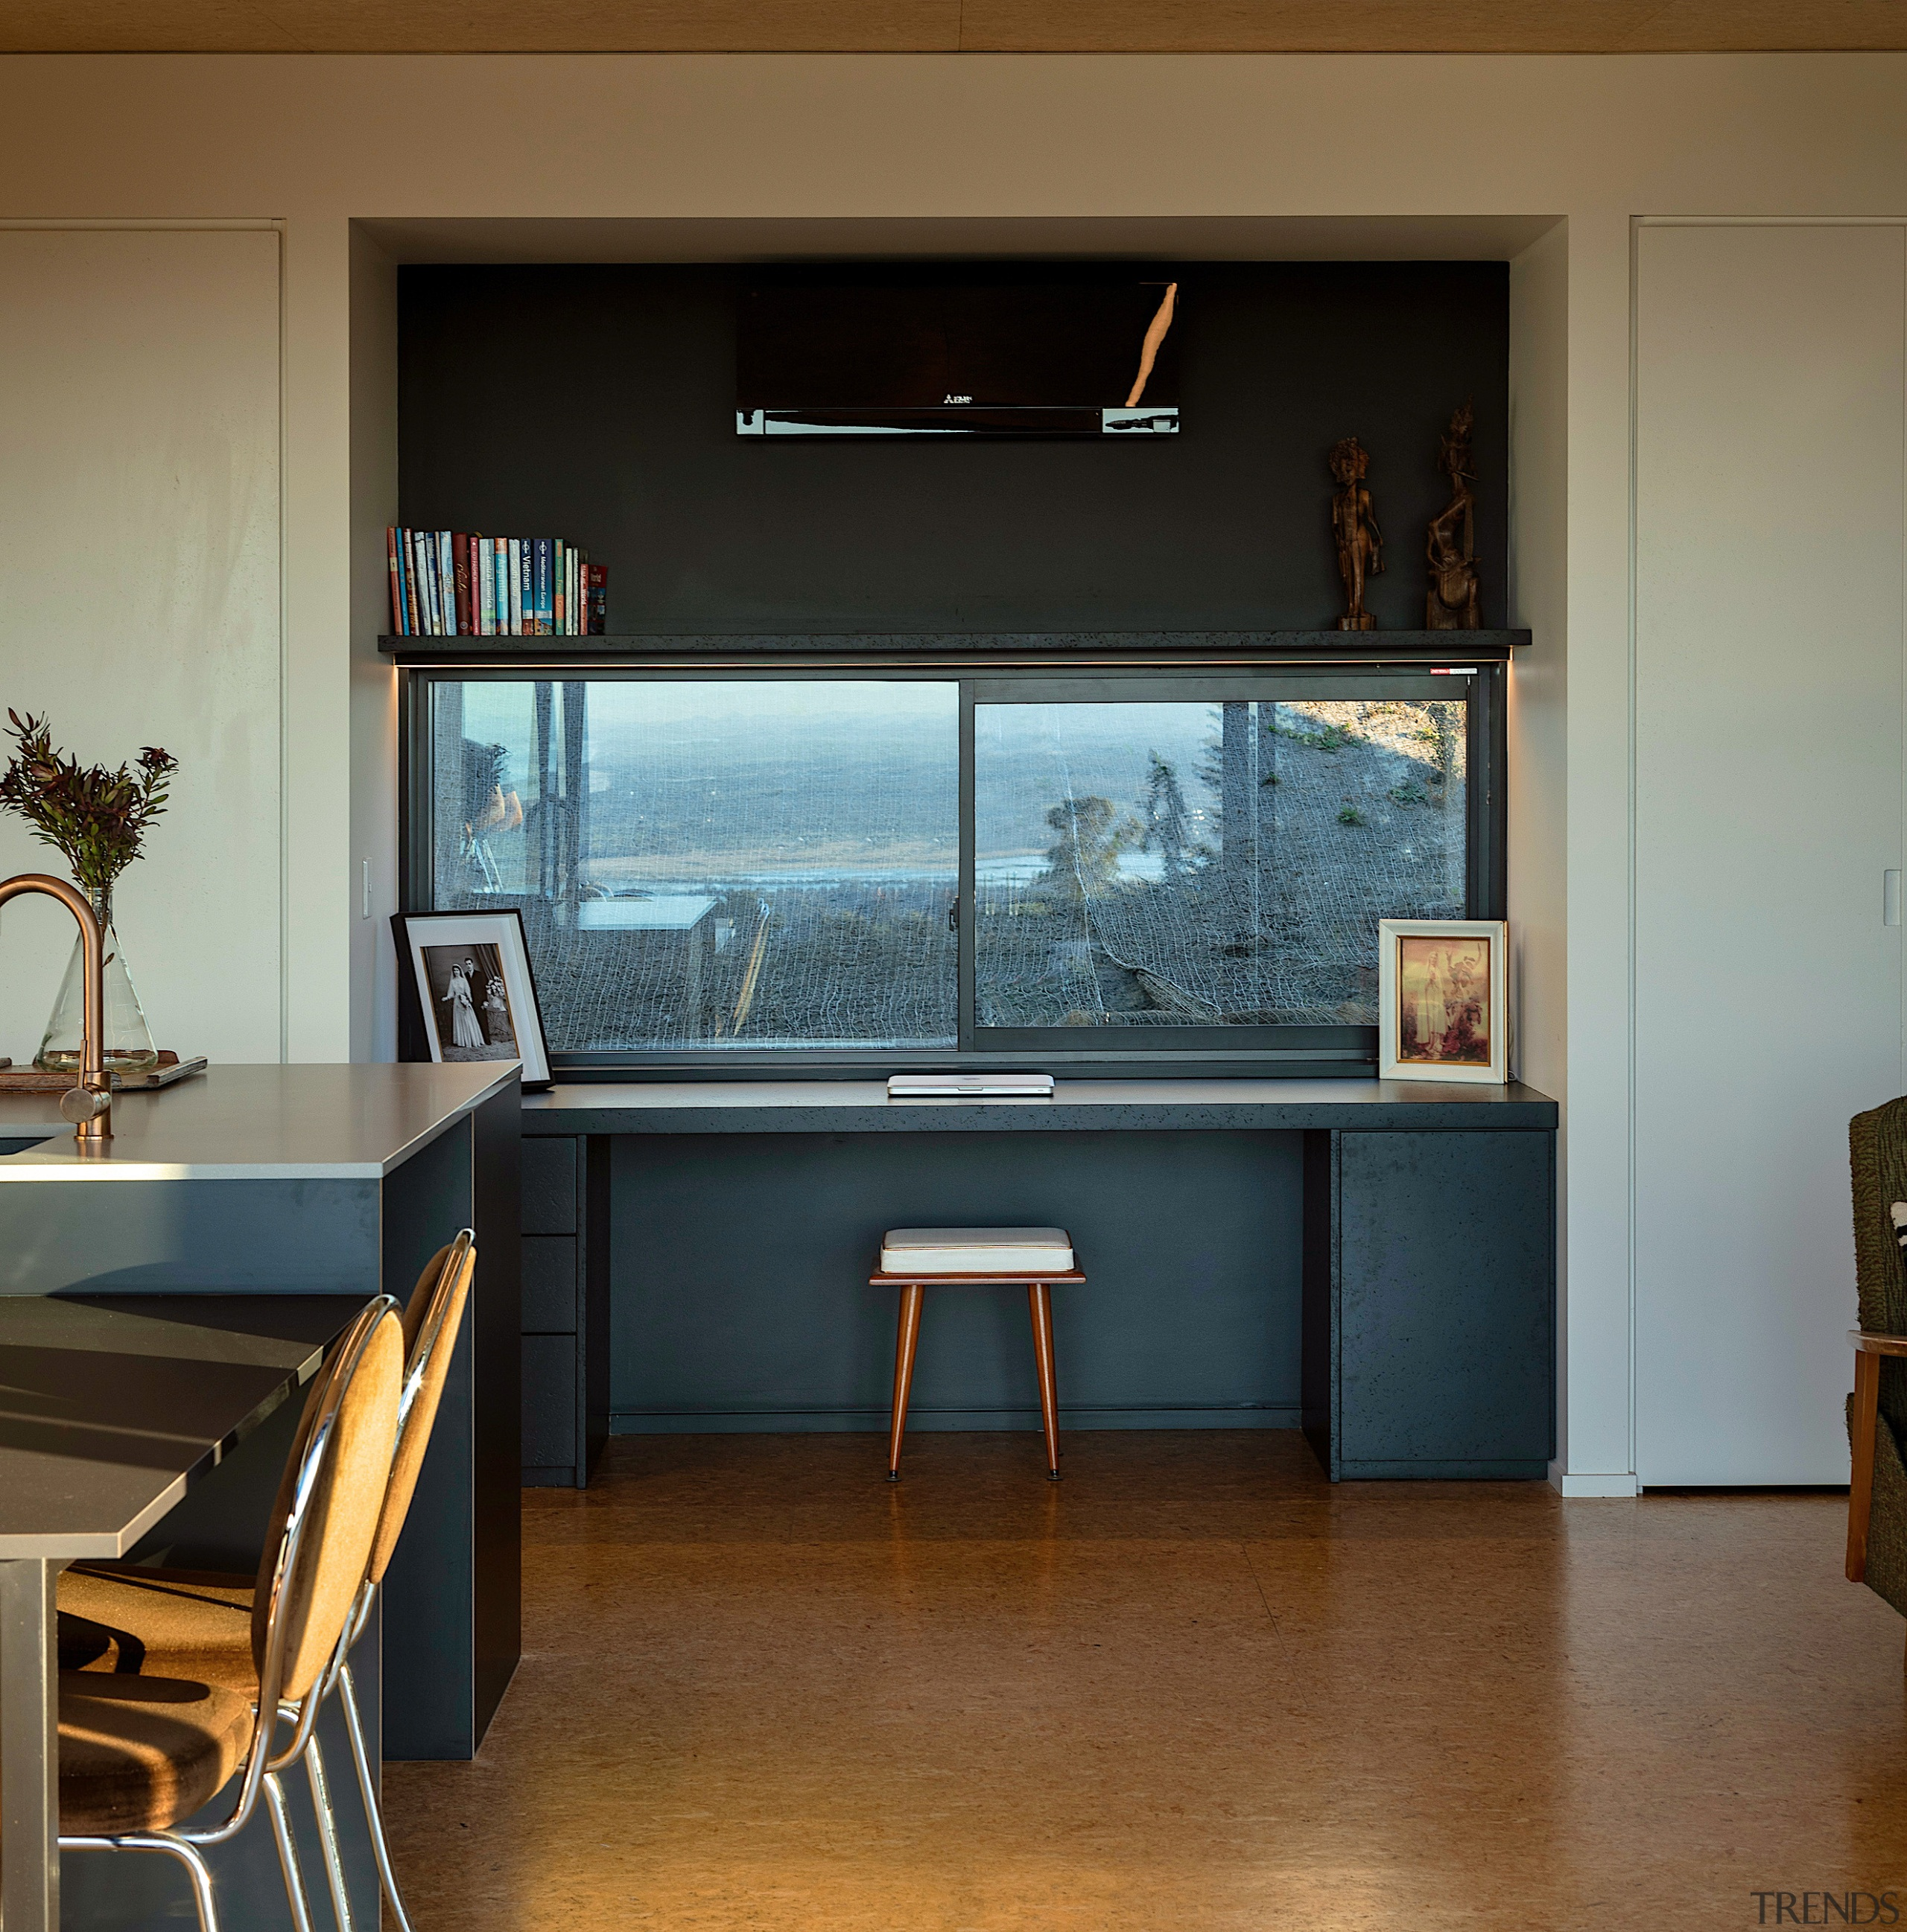 A study nook with a view to stop